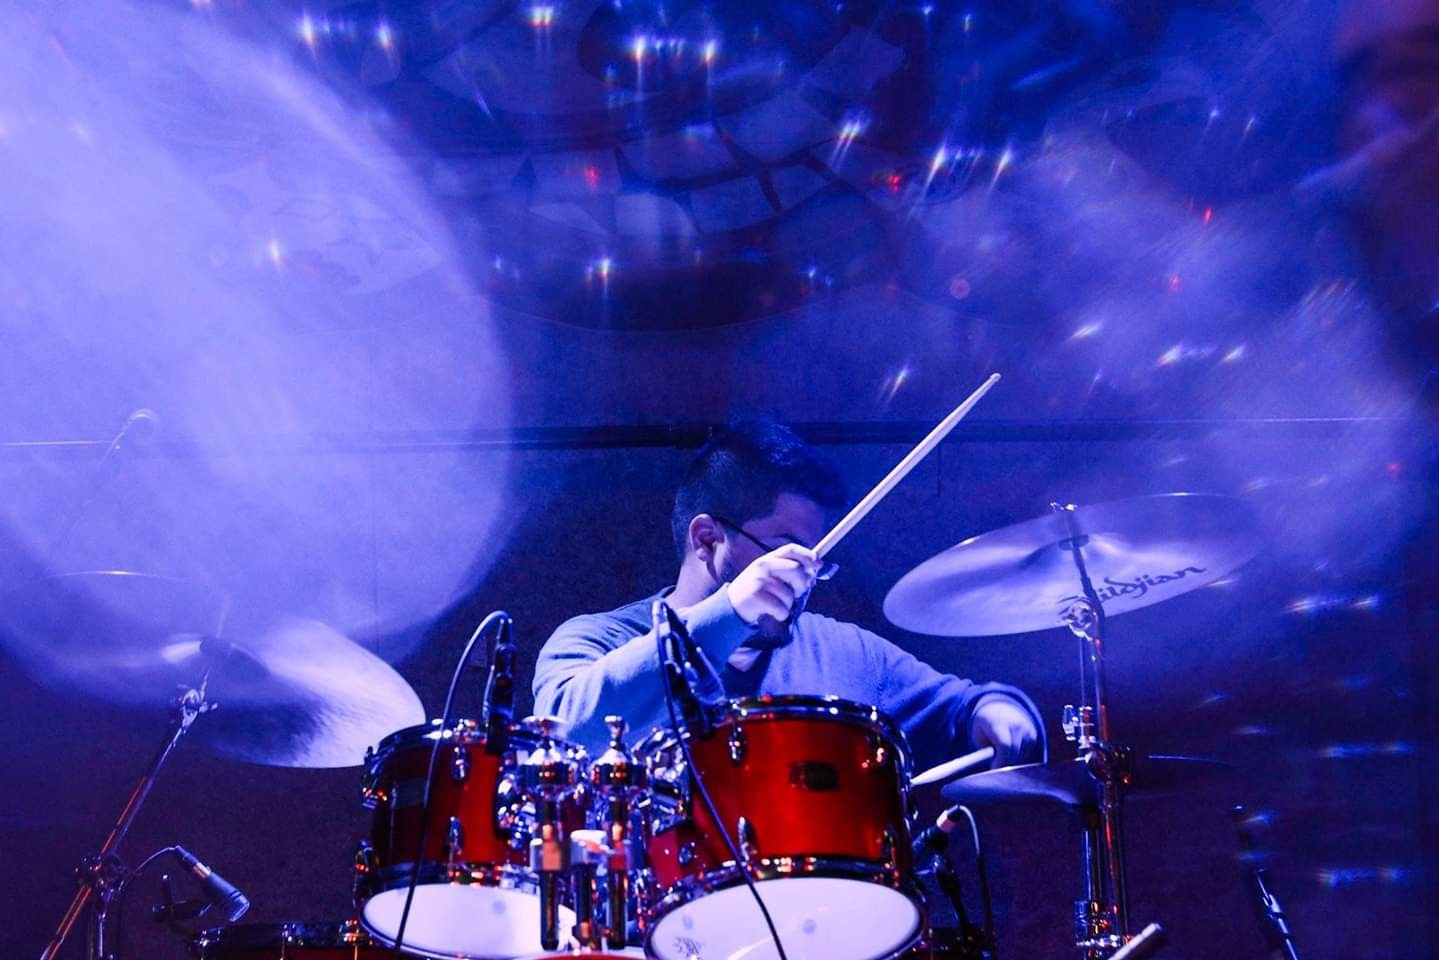 San Antonio Jazz Fusion Group 16 the Olympus to Play San Marcos' Martian Festival 2019